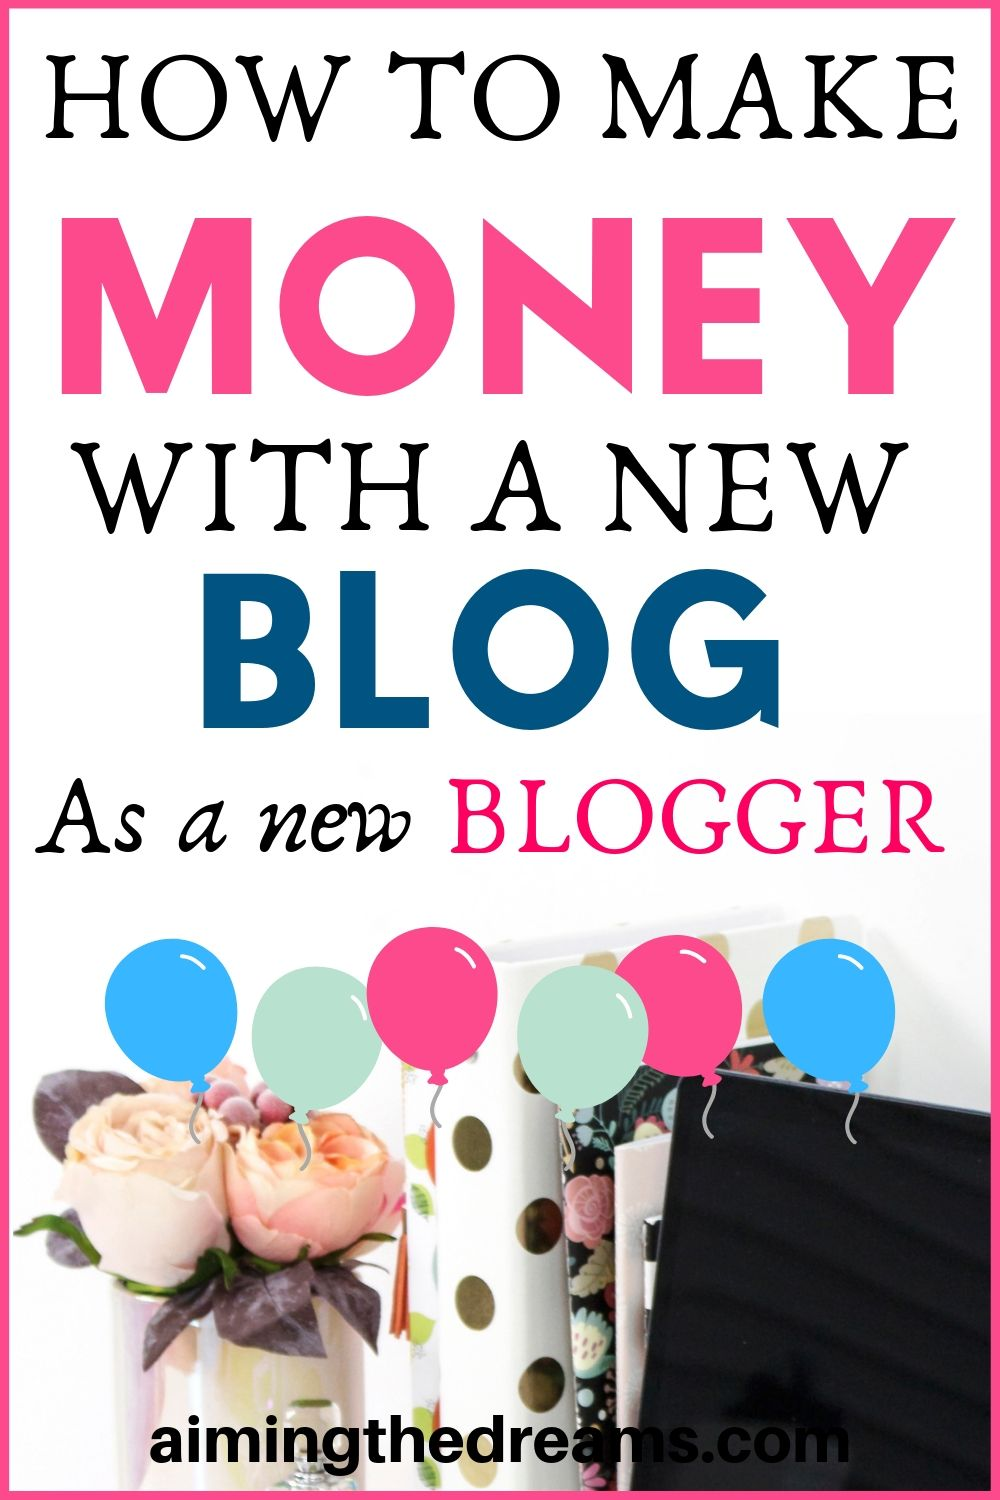 How to make money with a new blog as a beginner blogger